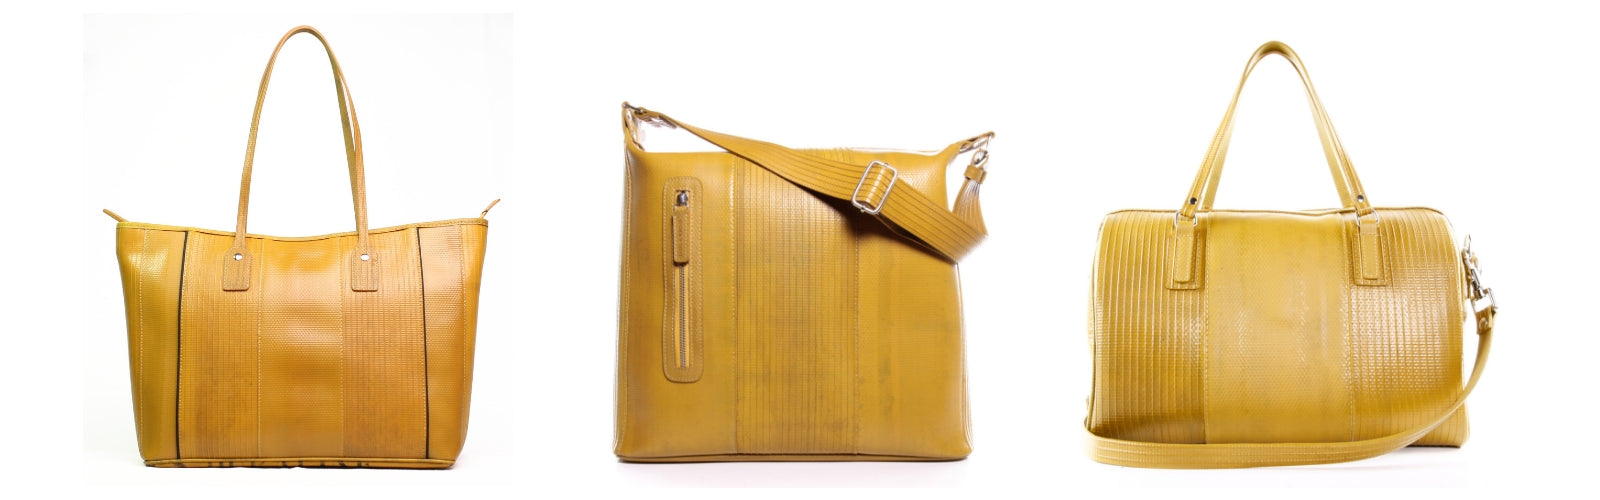 Mustard Handbag - Yellow Handbag - Elvis & Kresse